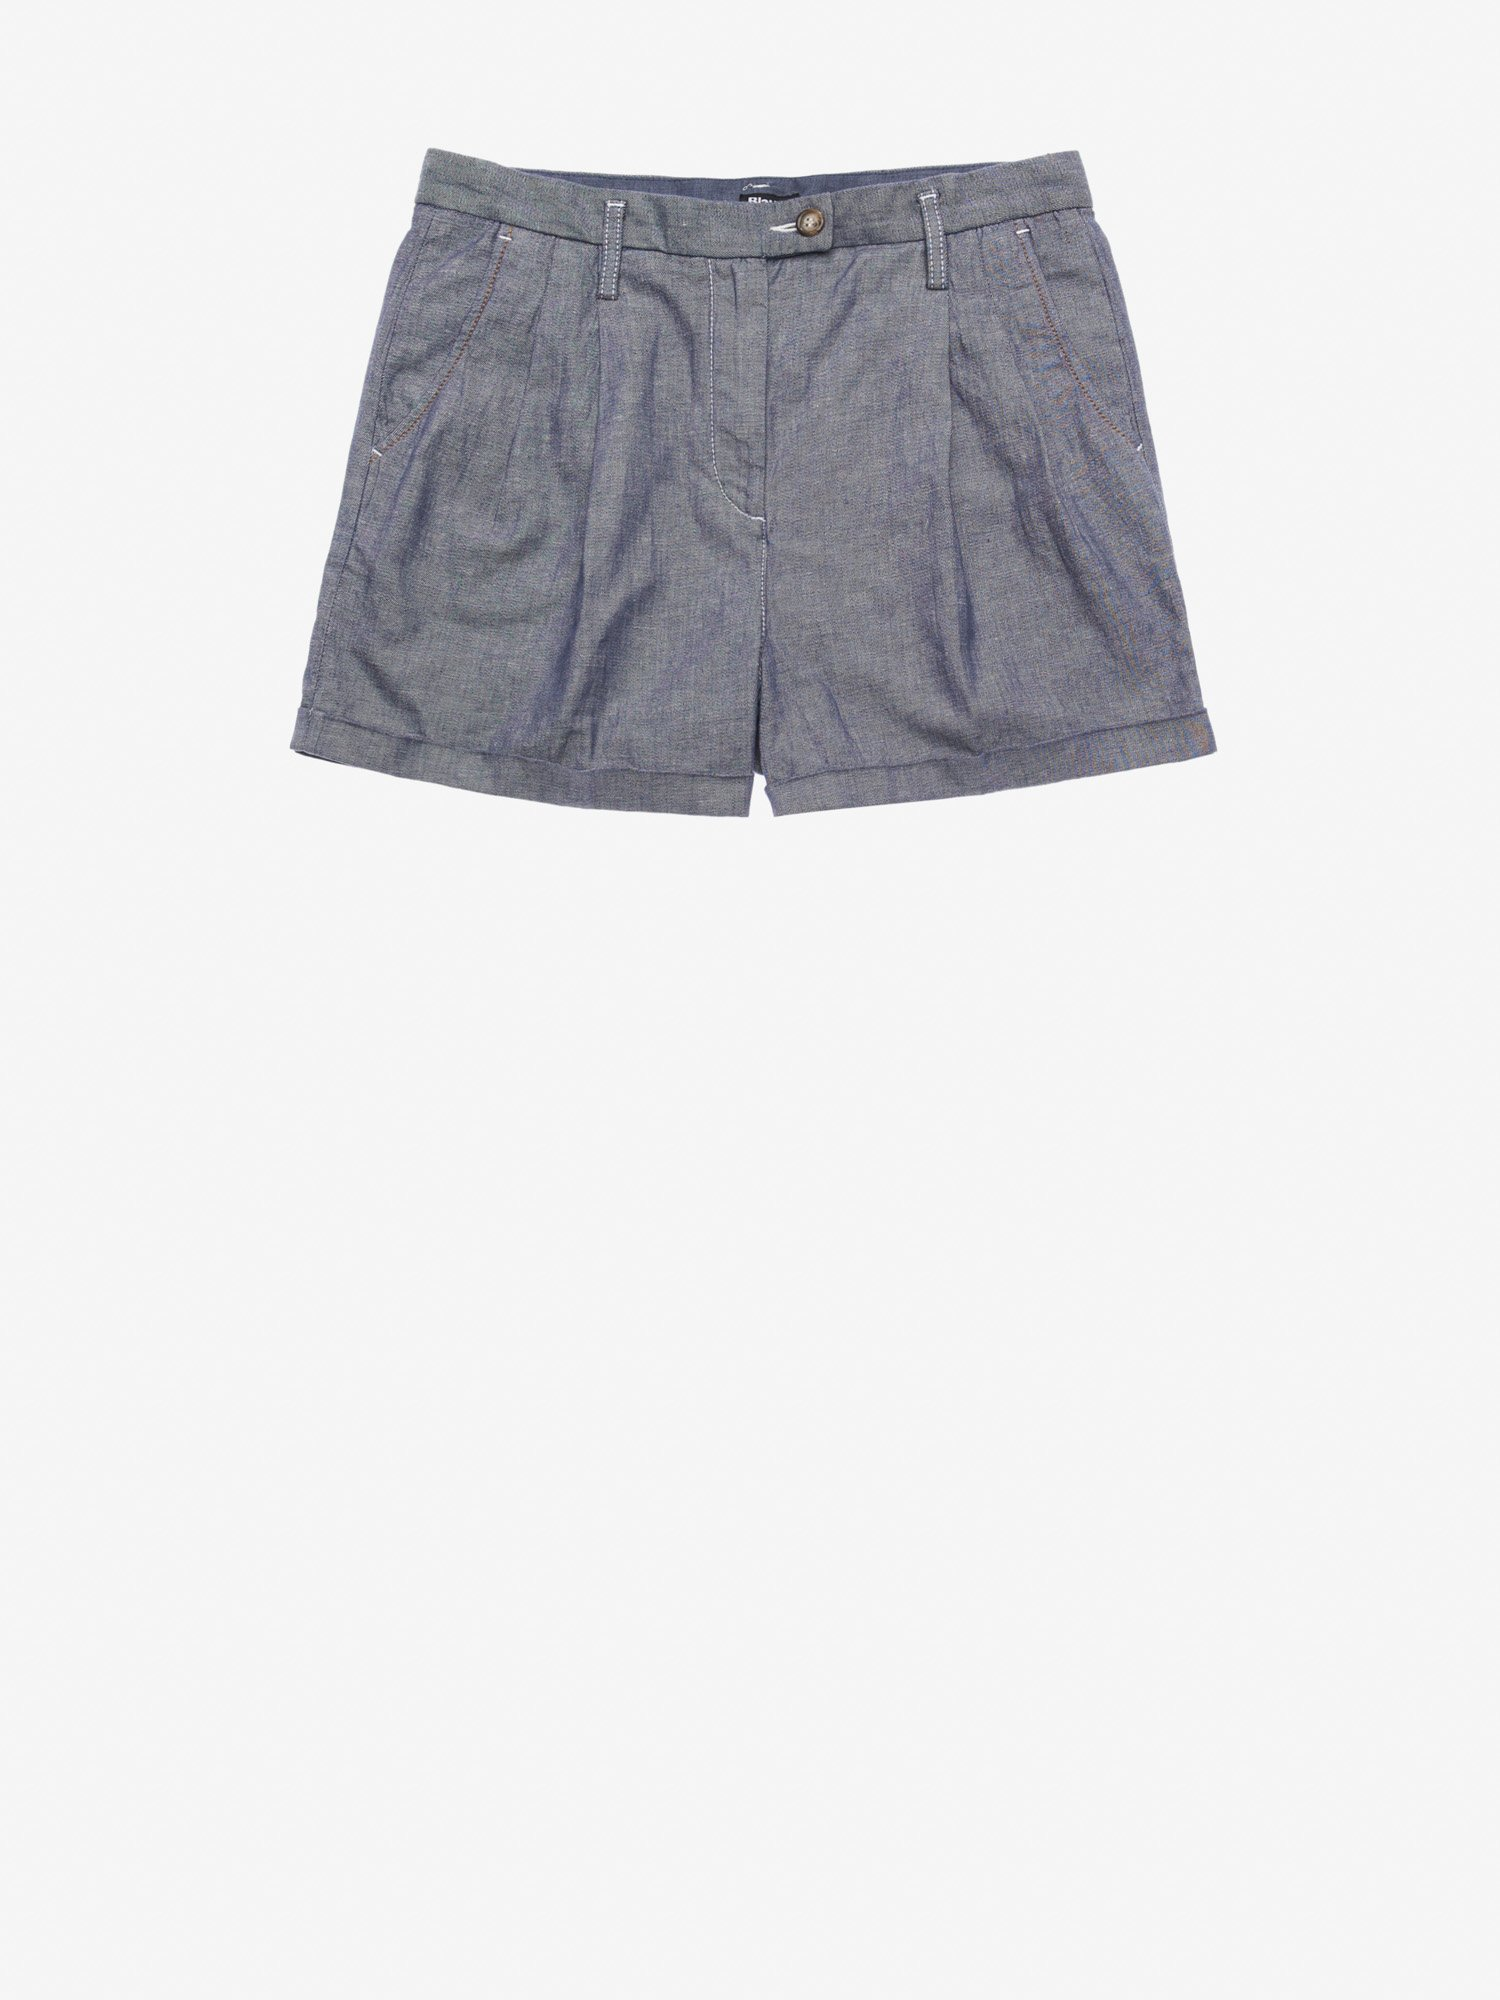 Blauer - WOMEN'S STRETCH COTTON LINEN SHORTS - blue - Blauer